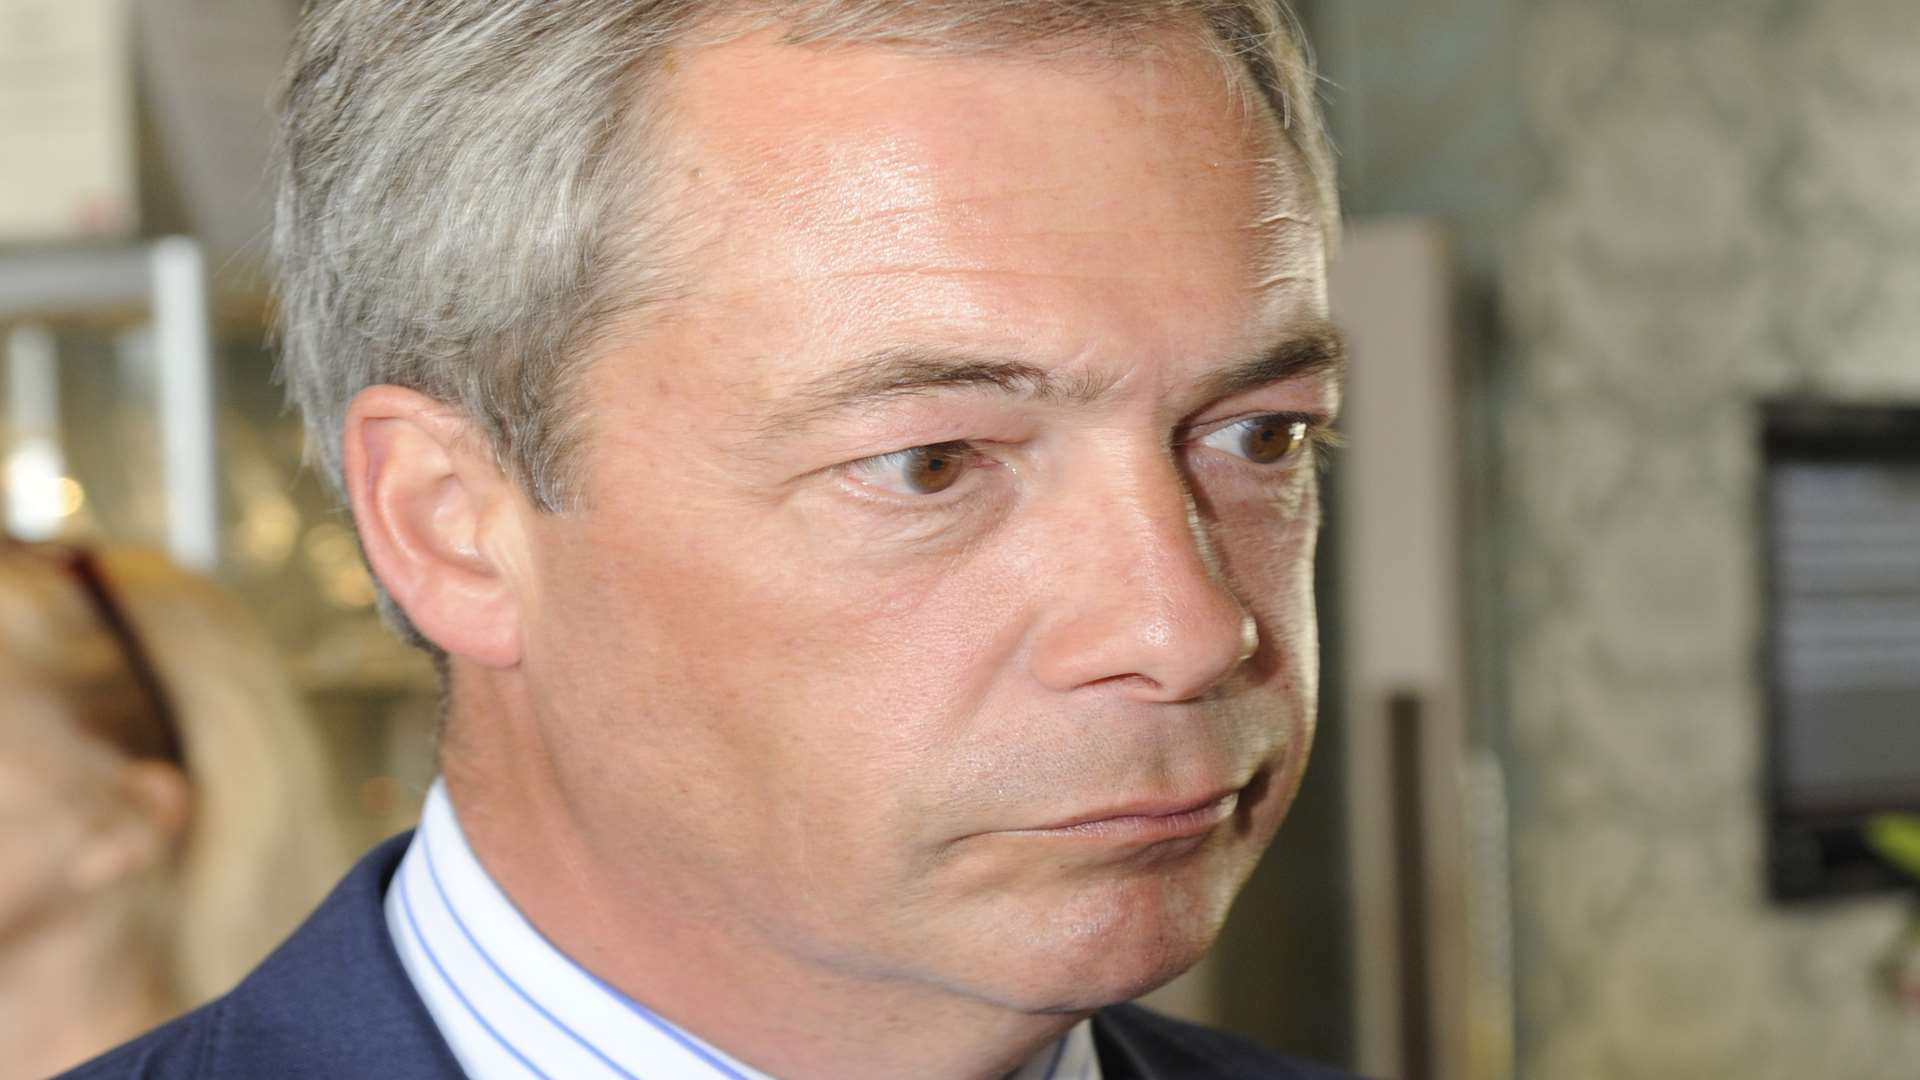 Nigel Farage's visit to Herne Bay was cancelled over security fears